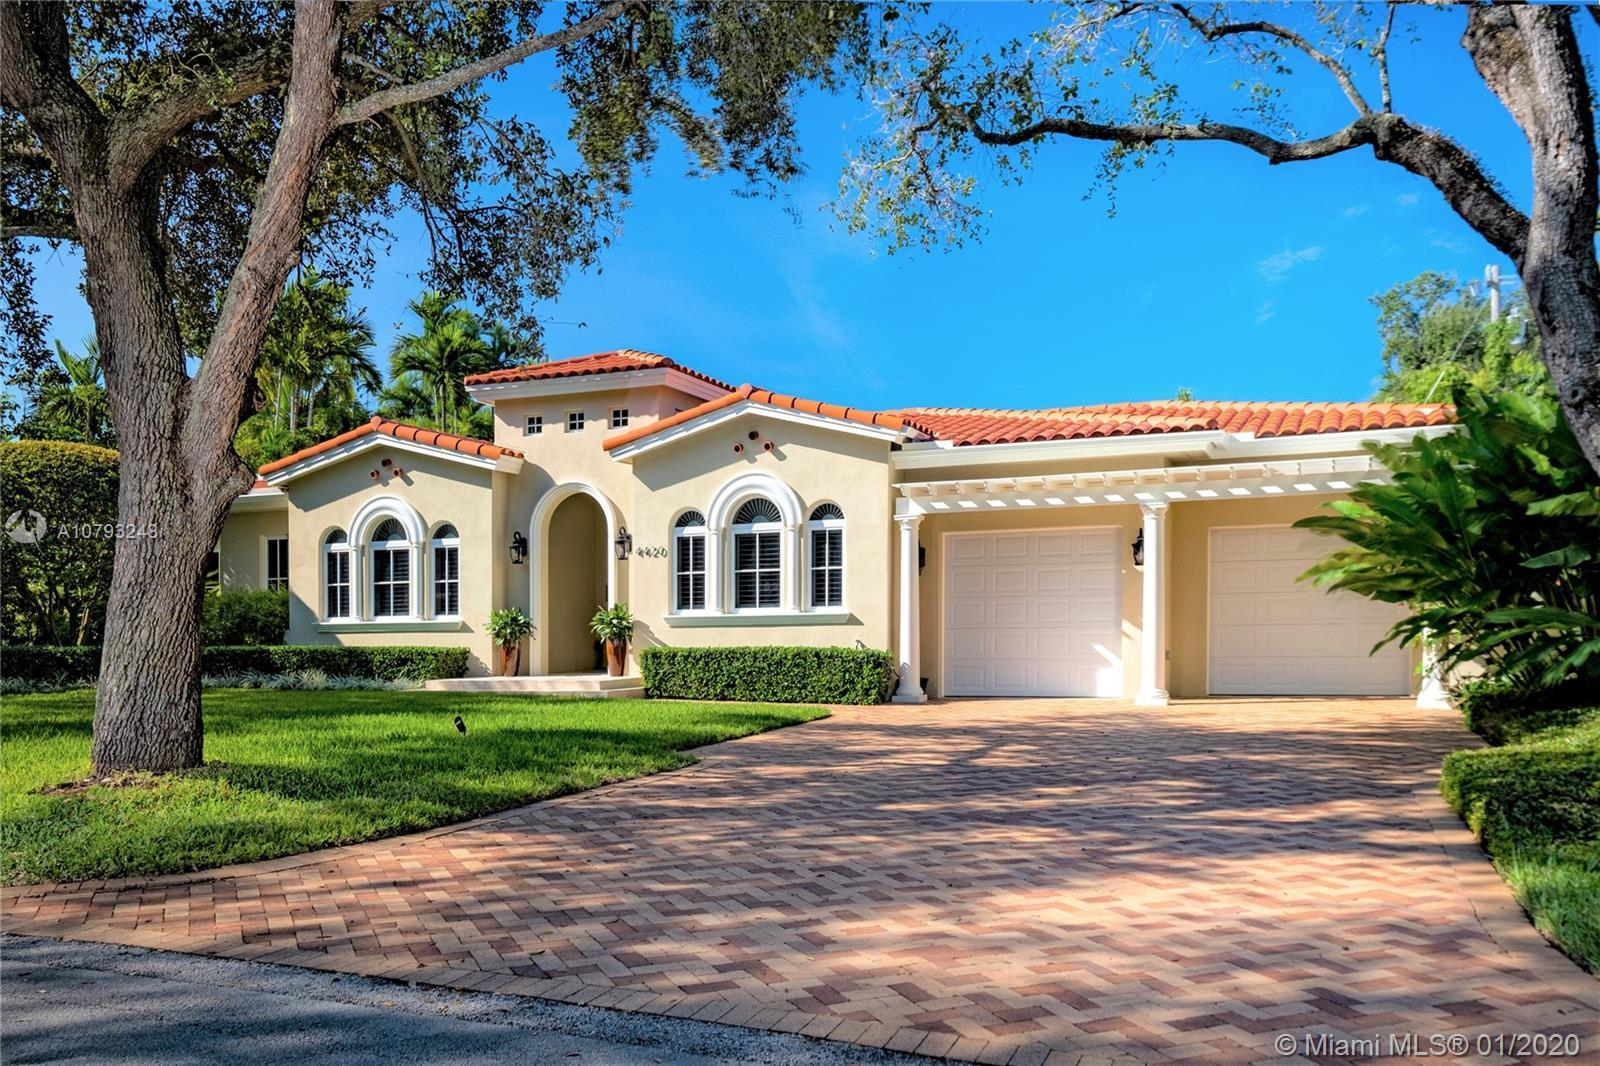 Executive living meets tropical haven! Move-in ready, single-story residence on coveted Coral Gables